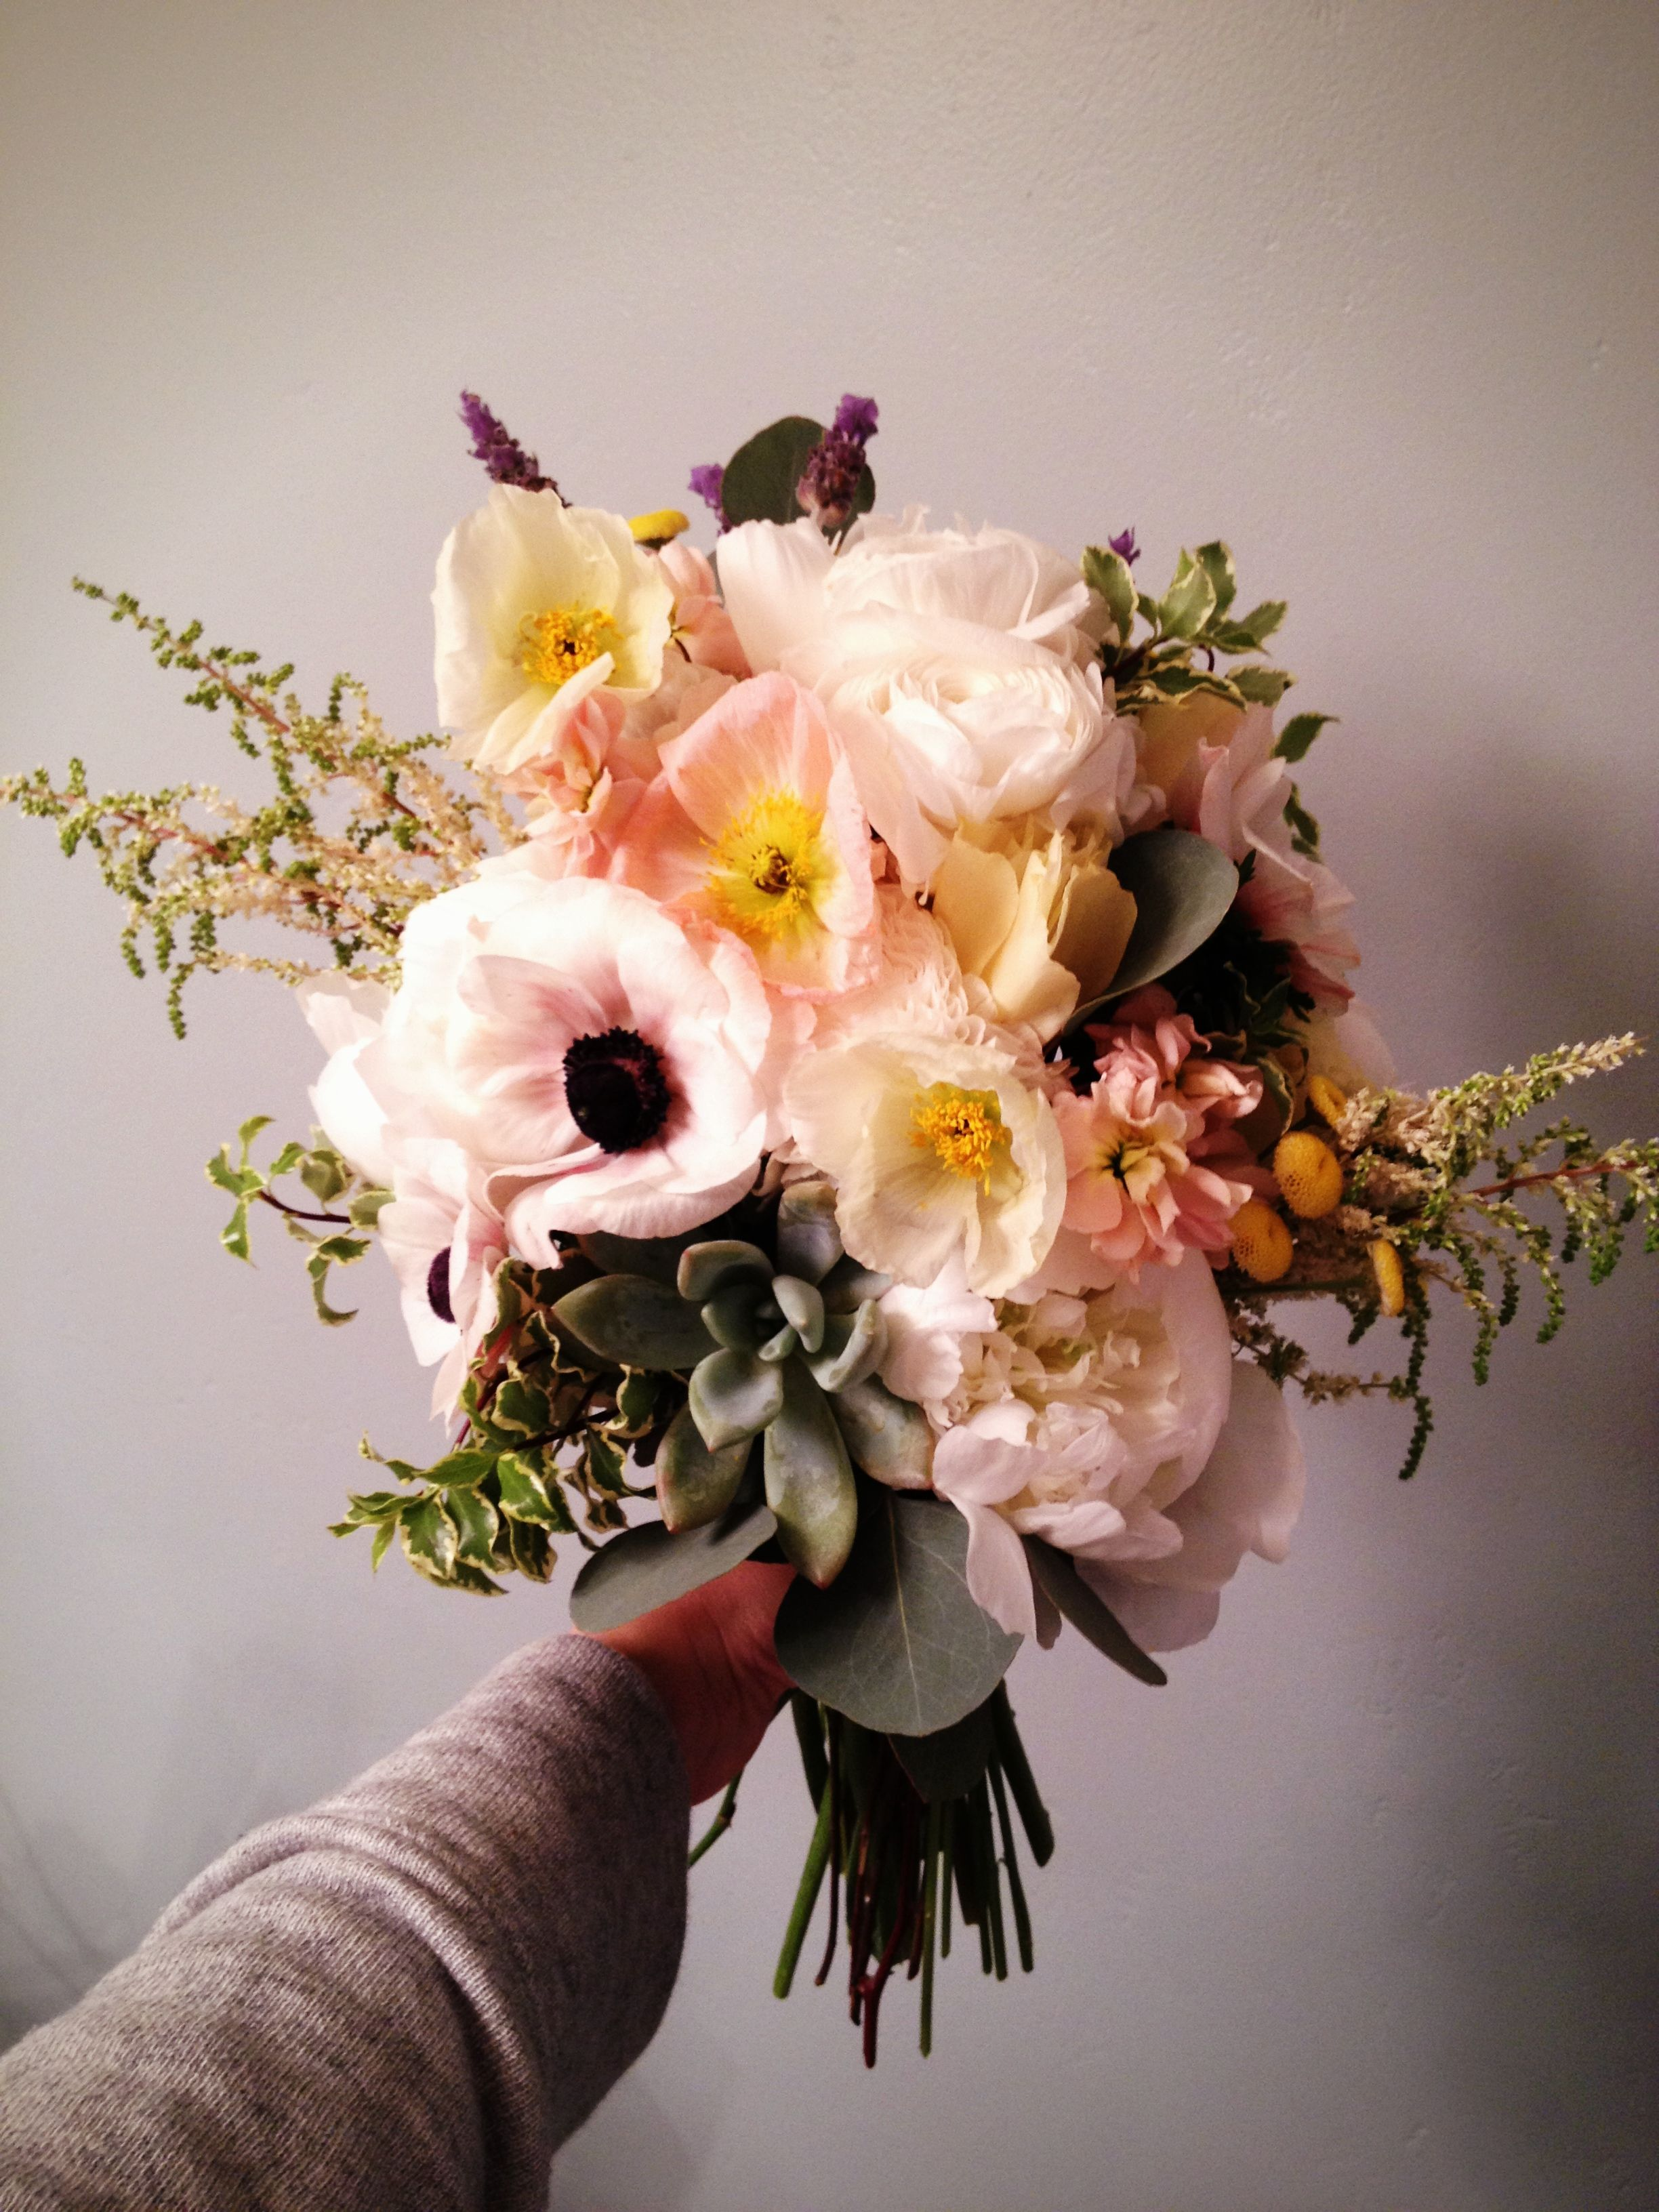 Rustic and wild wedding bouquet with peonies anemone ranunculus rustic and wild wedding bouquet with peonies anemone ranunculus succulents and poppies by lizys lilies izmirmasajfo